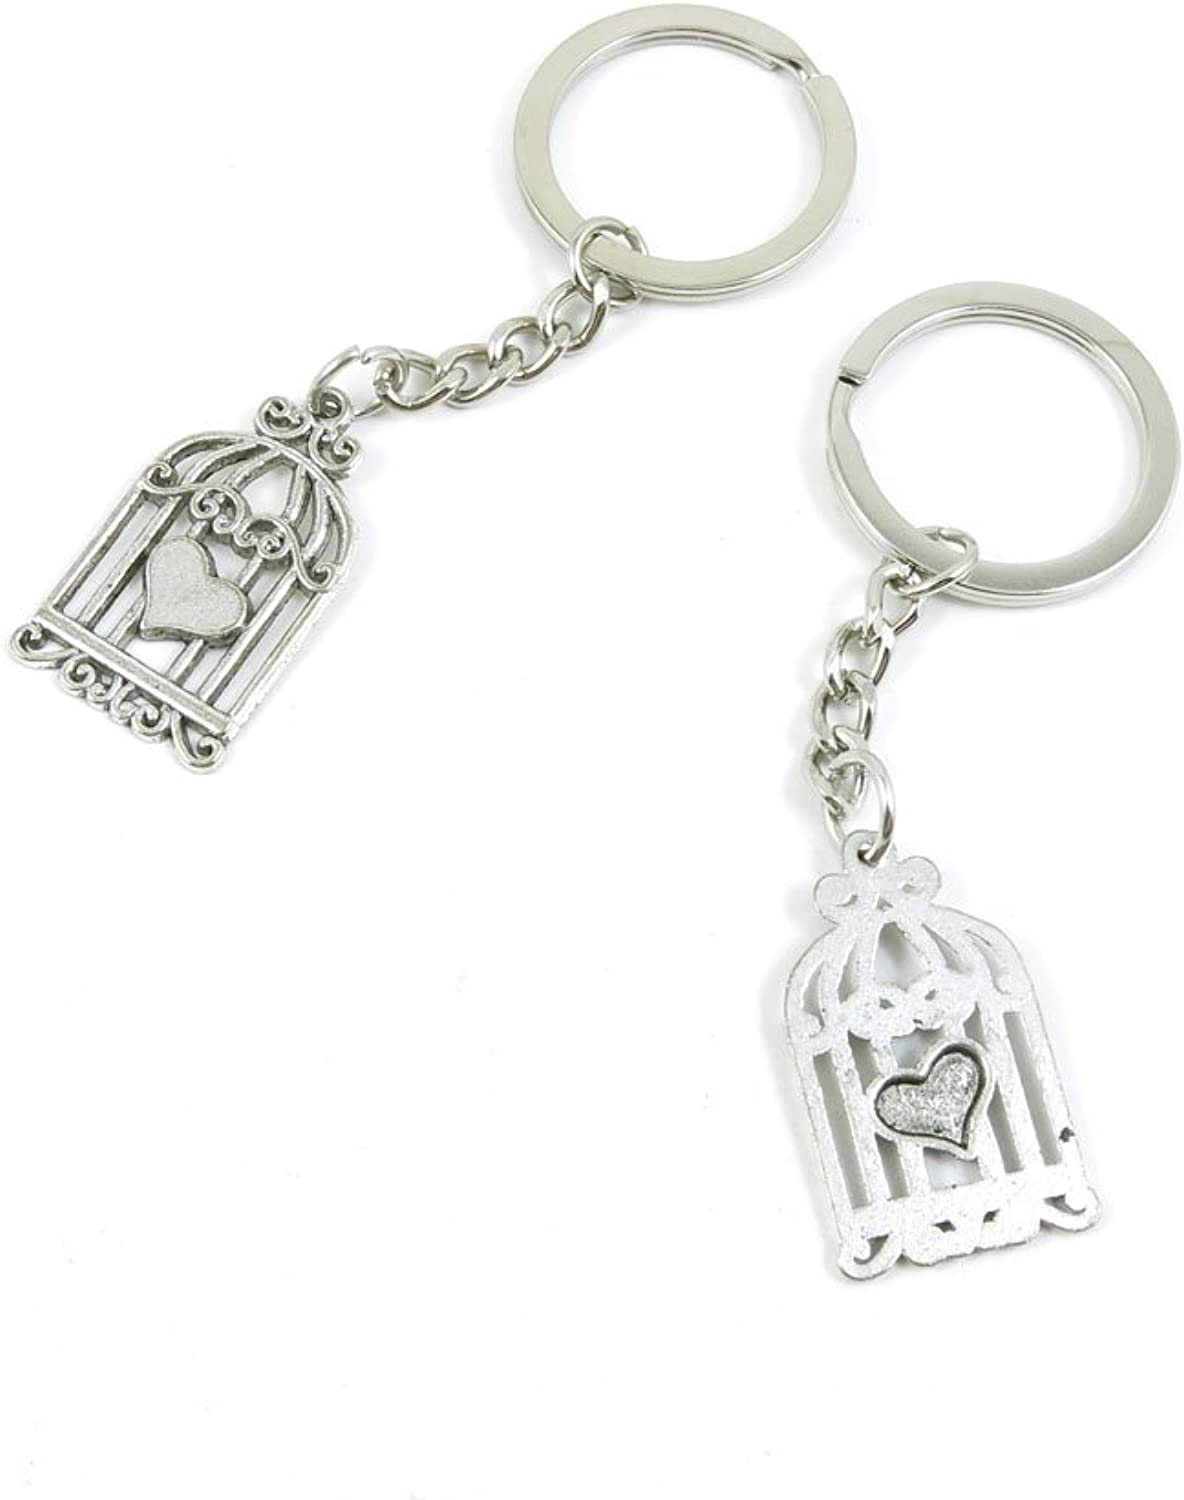 100 Pieces Keychain Keyring Door Car Key Chain Ring Tag Charms Bulk Supply Jewelry Making Clasp Findings W6UM7X Heart Bird Cage Birdcage